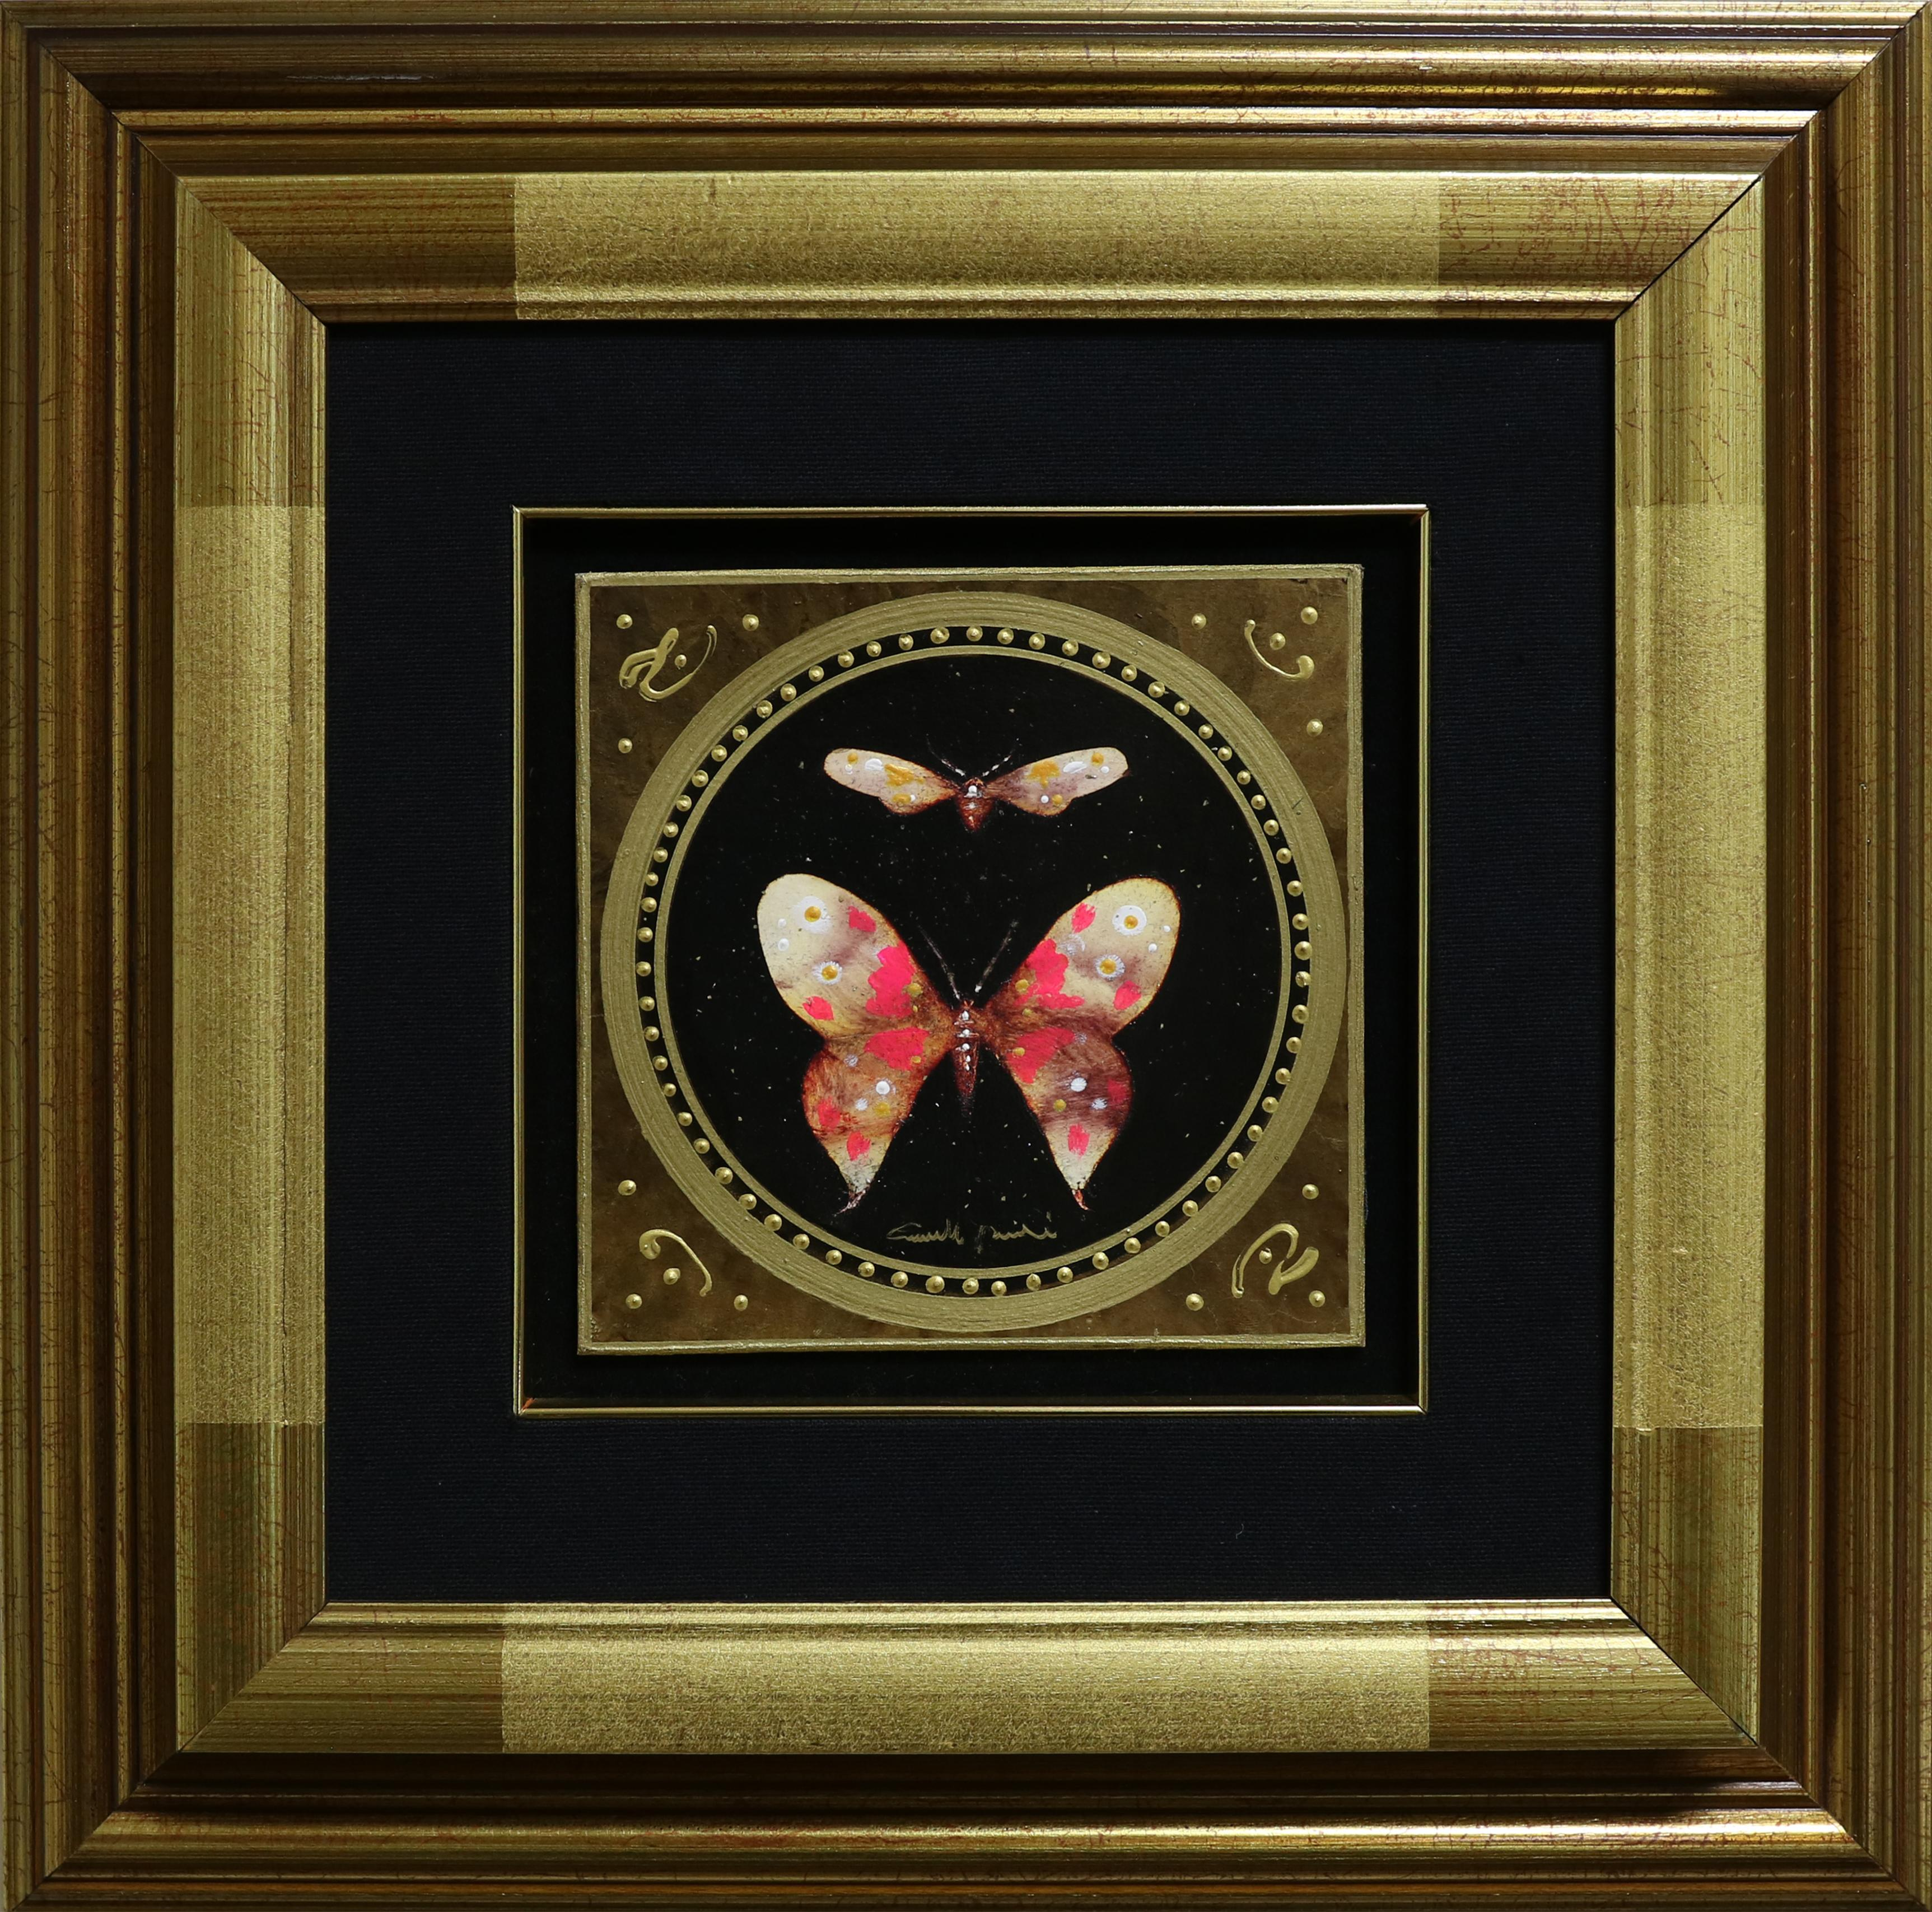 """""""Surrealistic Butterfly"""" by Giampaolo Bianchi 6.5 x 6.5inch Mixed Media on Board"""